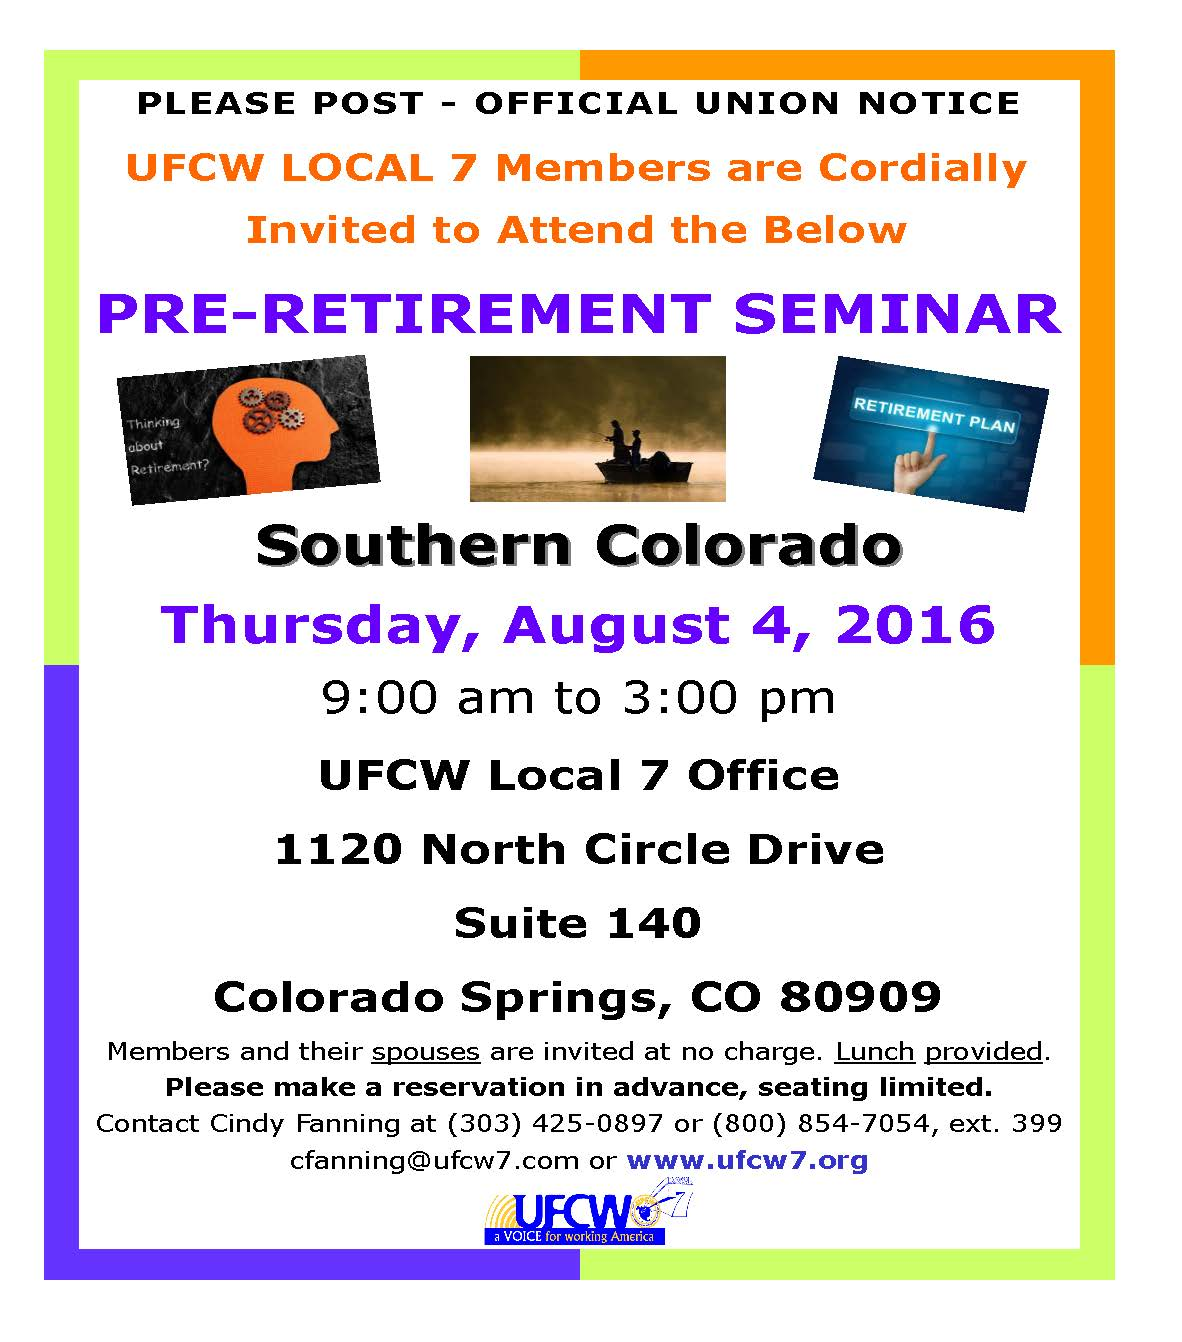 Pre-Retirement Seminar – Southern Colorado